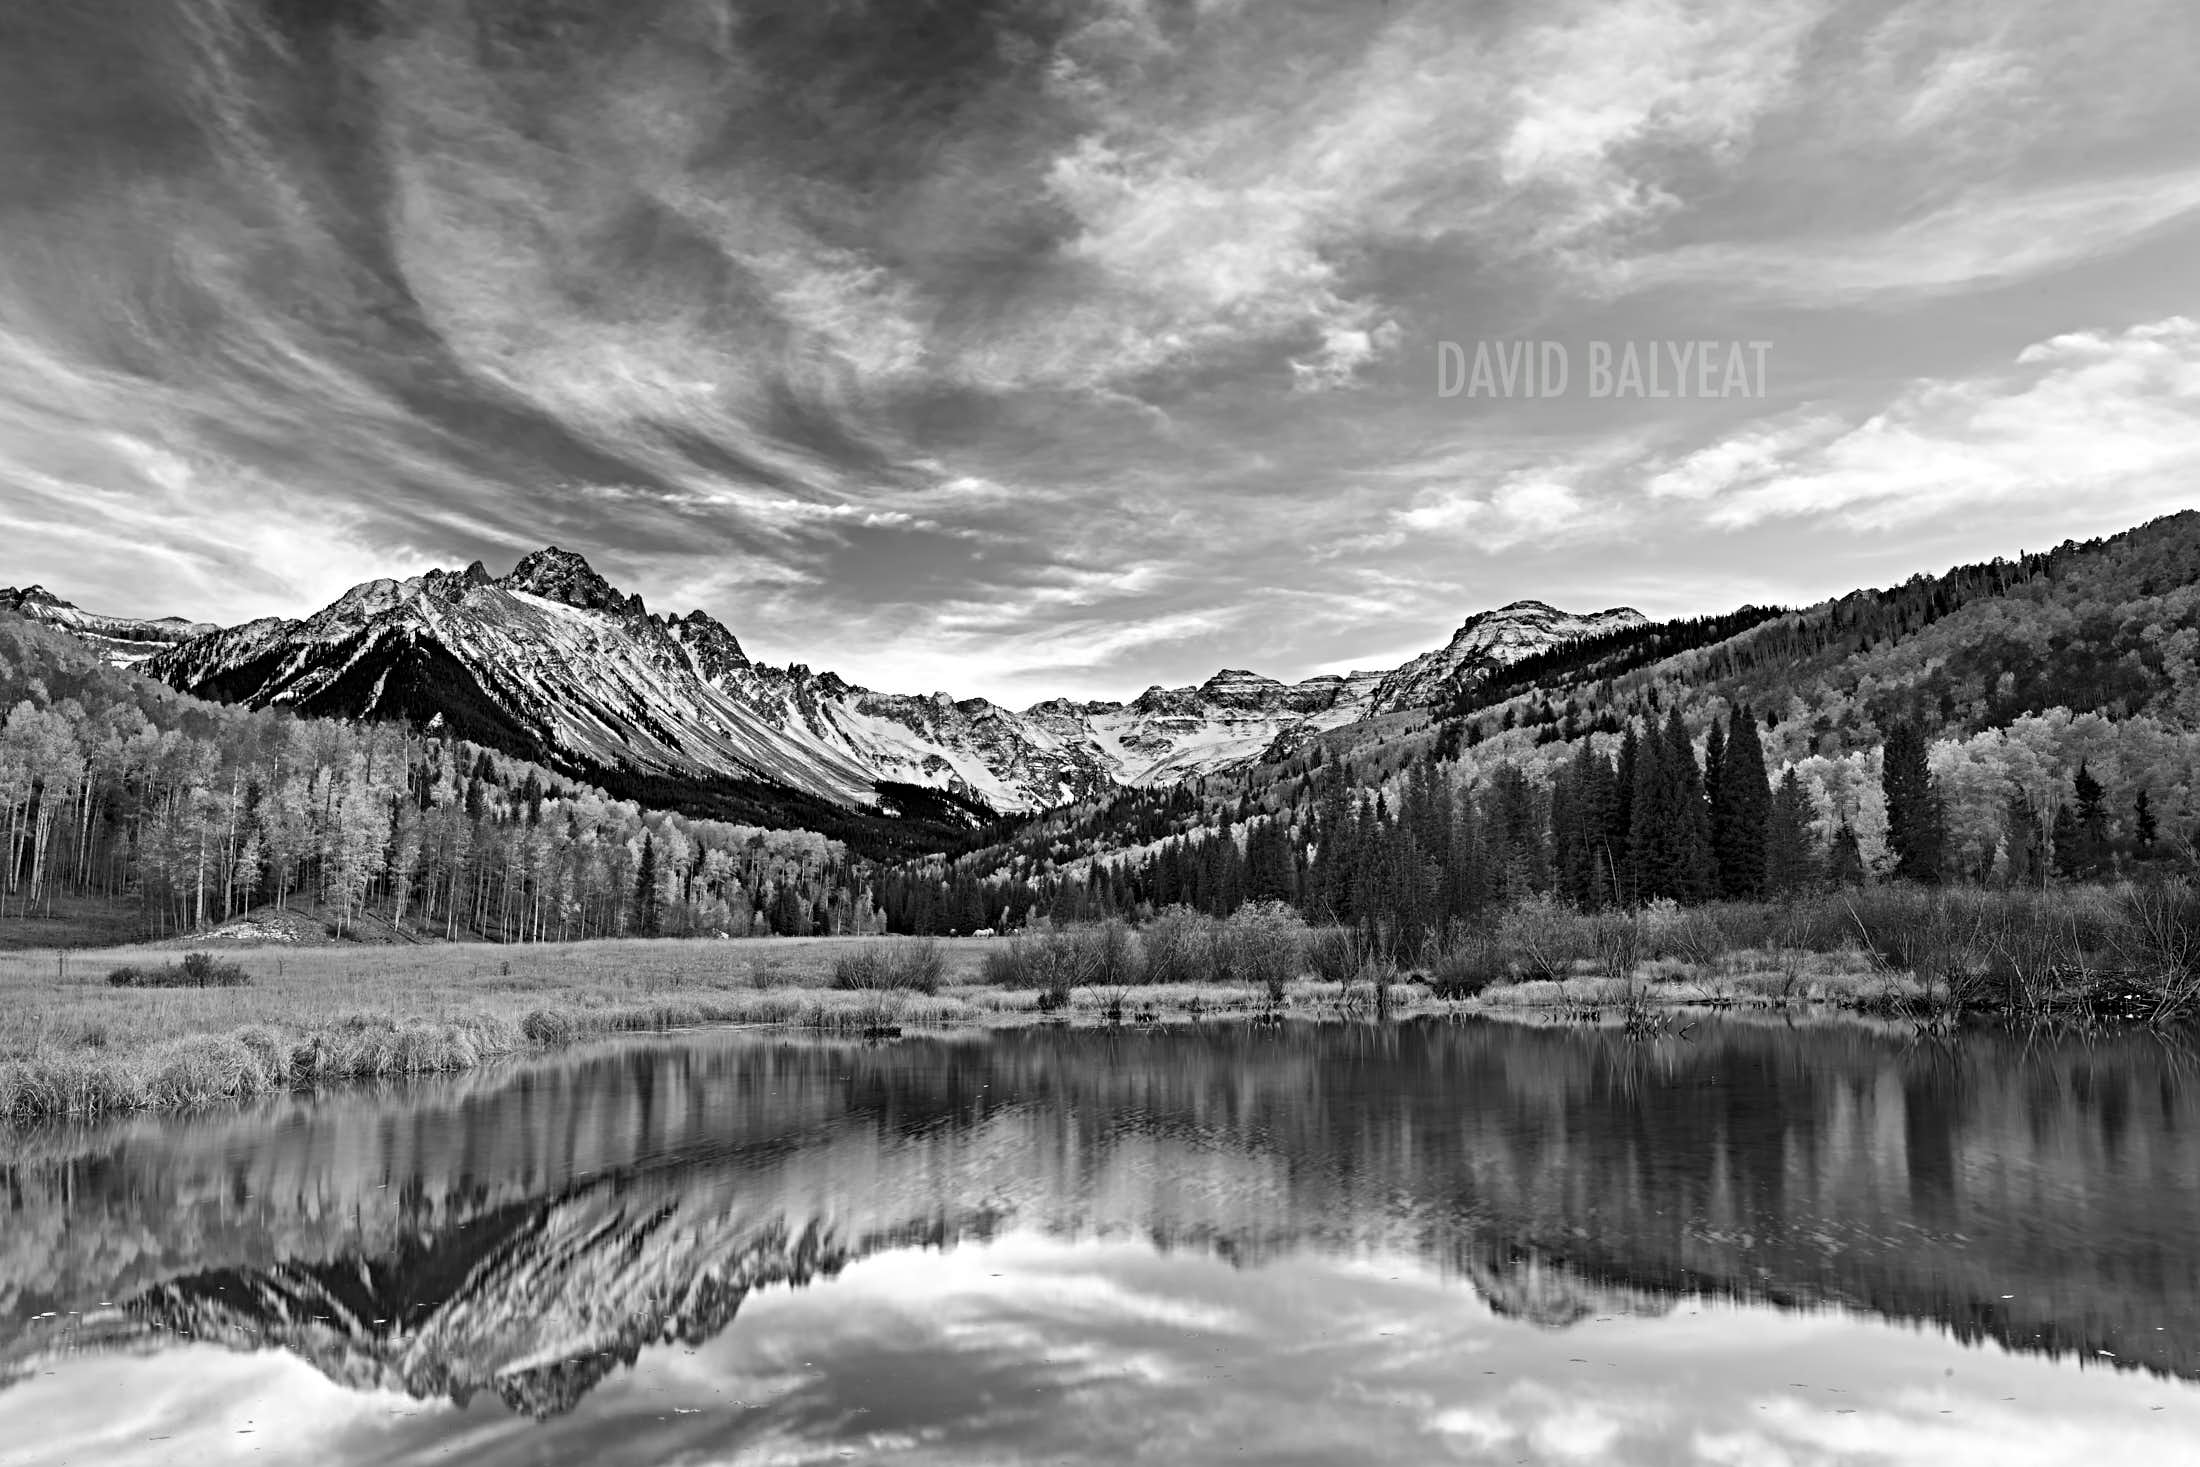 Mount Sneffels snow-capped Colorado mountains black and white high-definition HD professional landscape photography